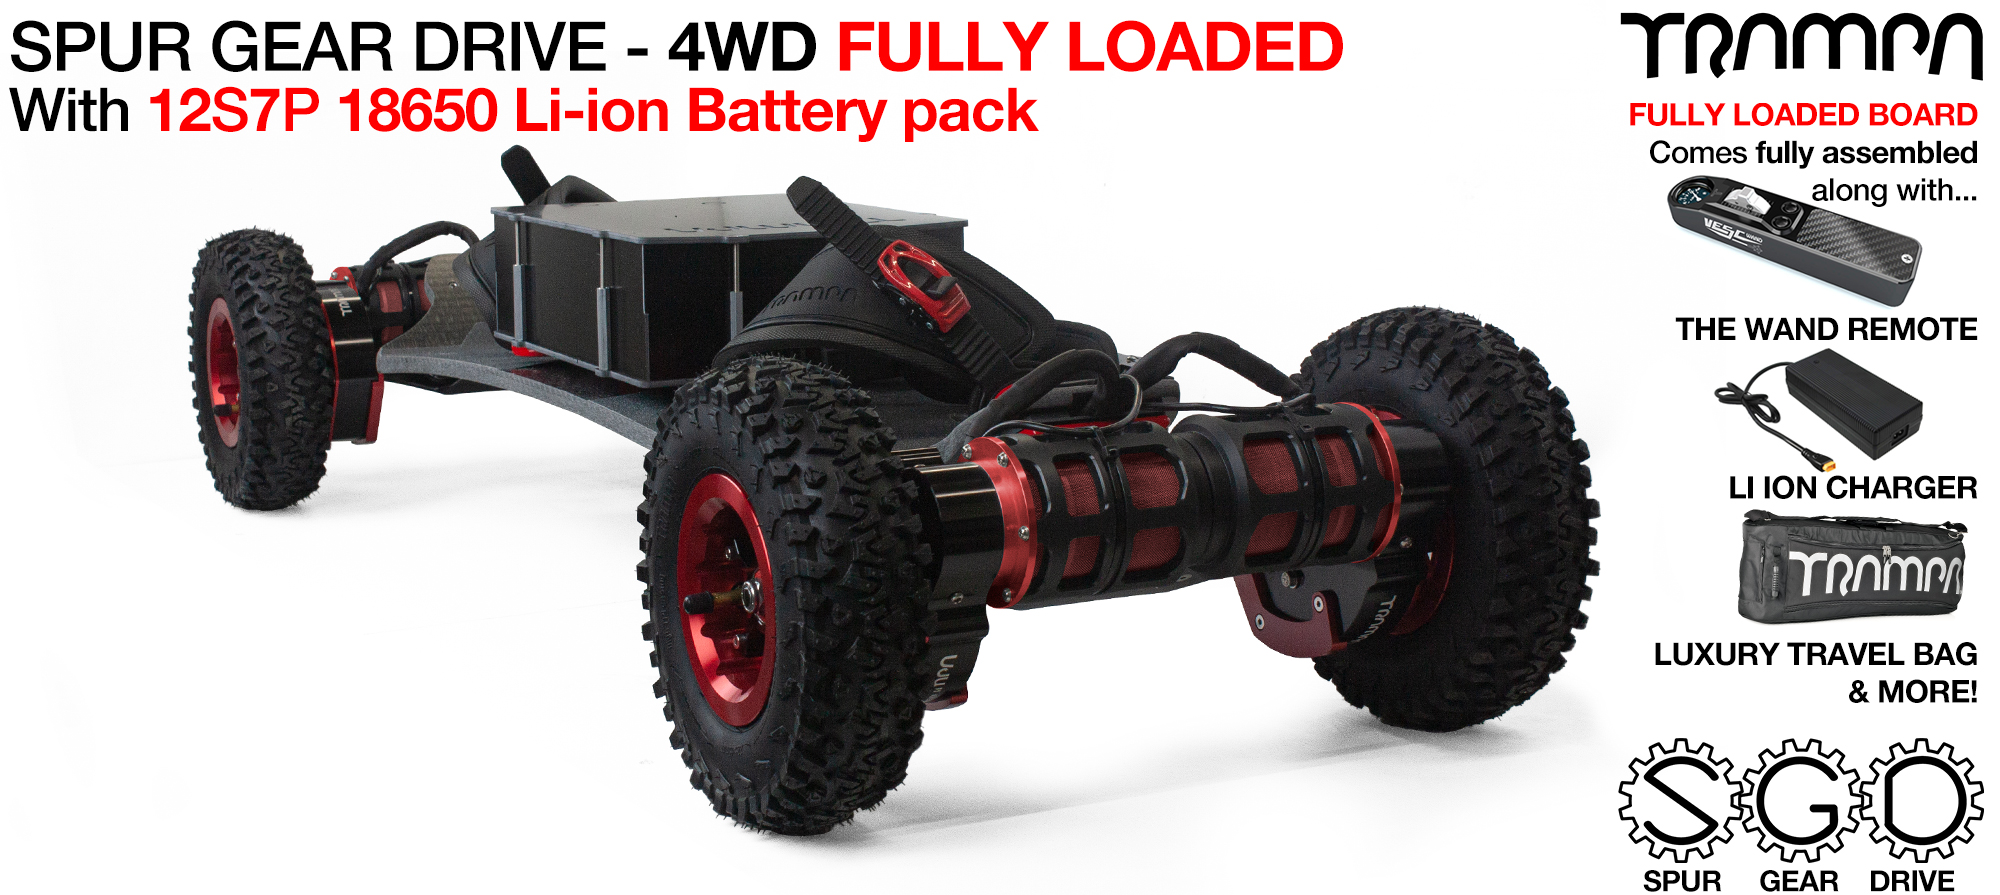 4WD SPUR GEAR DRIVE BIGBOI & Battery pack TRAMPA Electric Mountainboard with MEGASTARS hubs all round